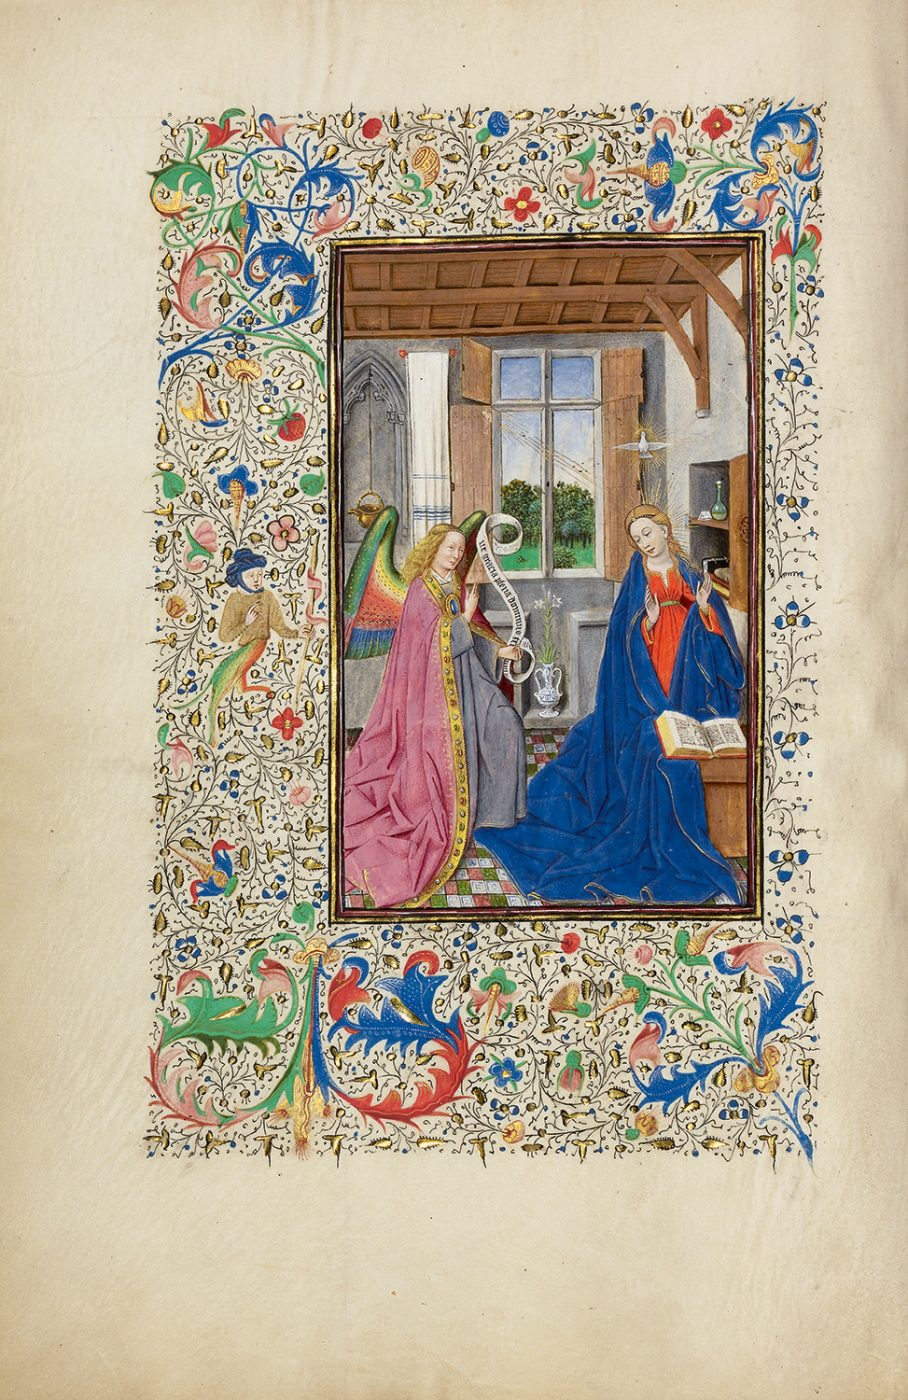 Willem Vrelant, The Annunciation, from The Llangattock Hours, c. 1450 (The J. Paul Getty Museum, Los Angeles)